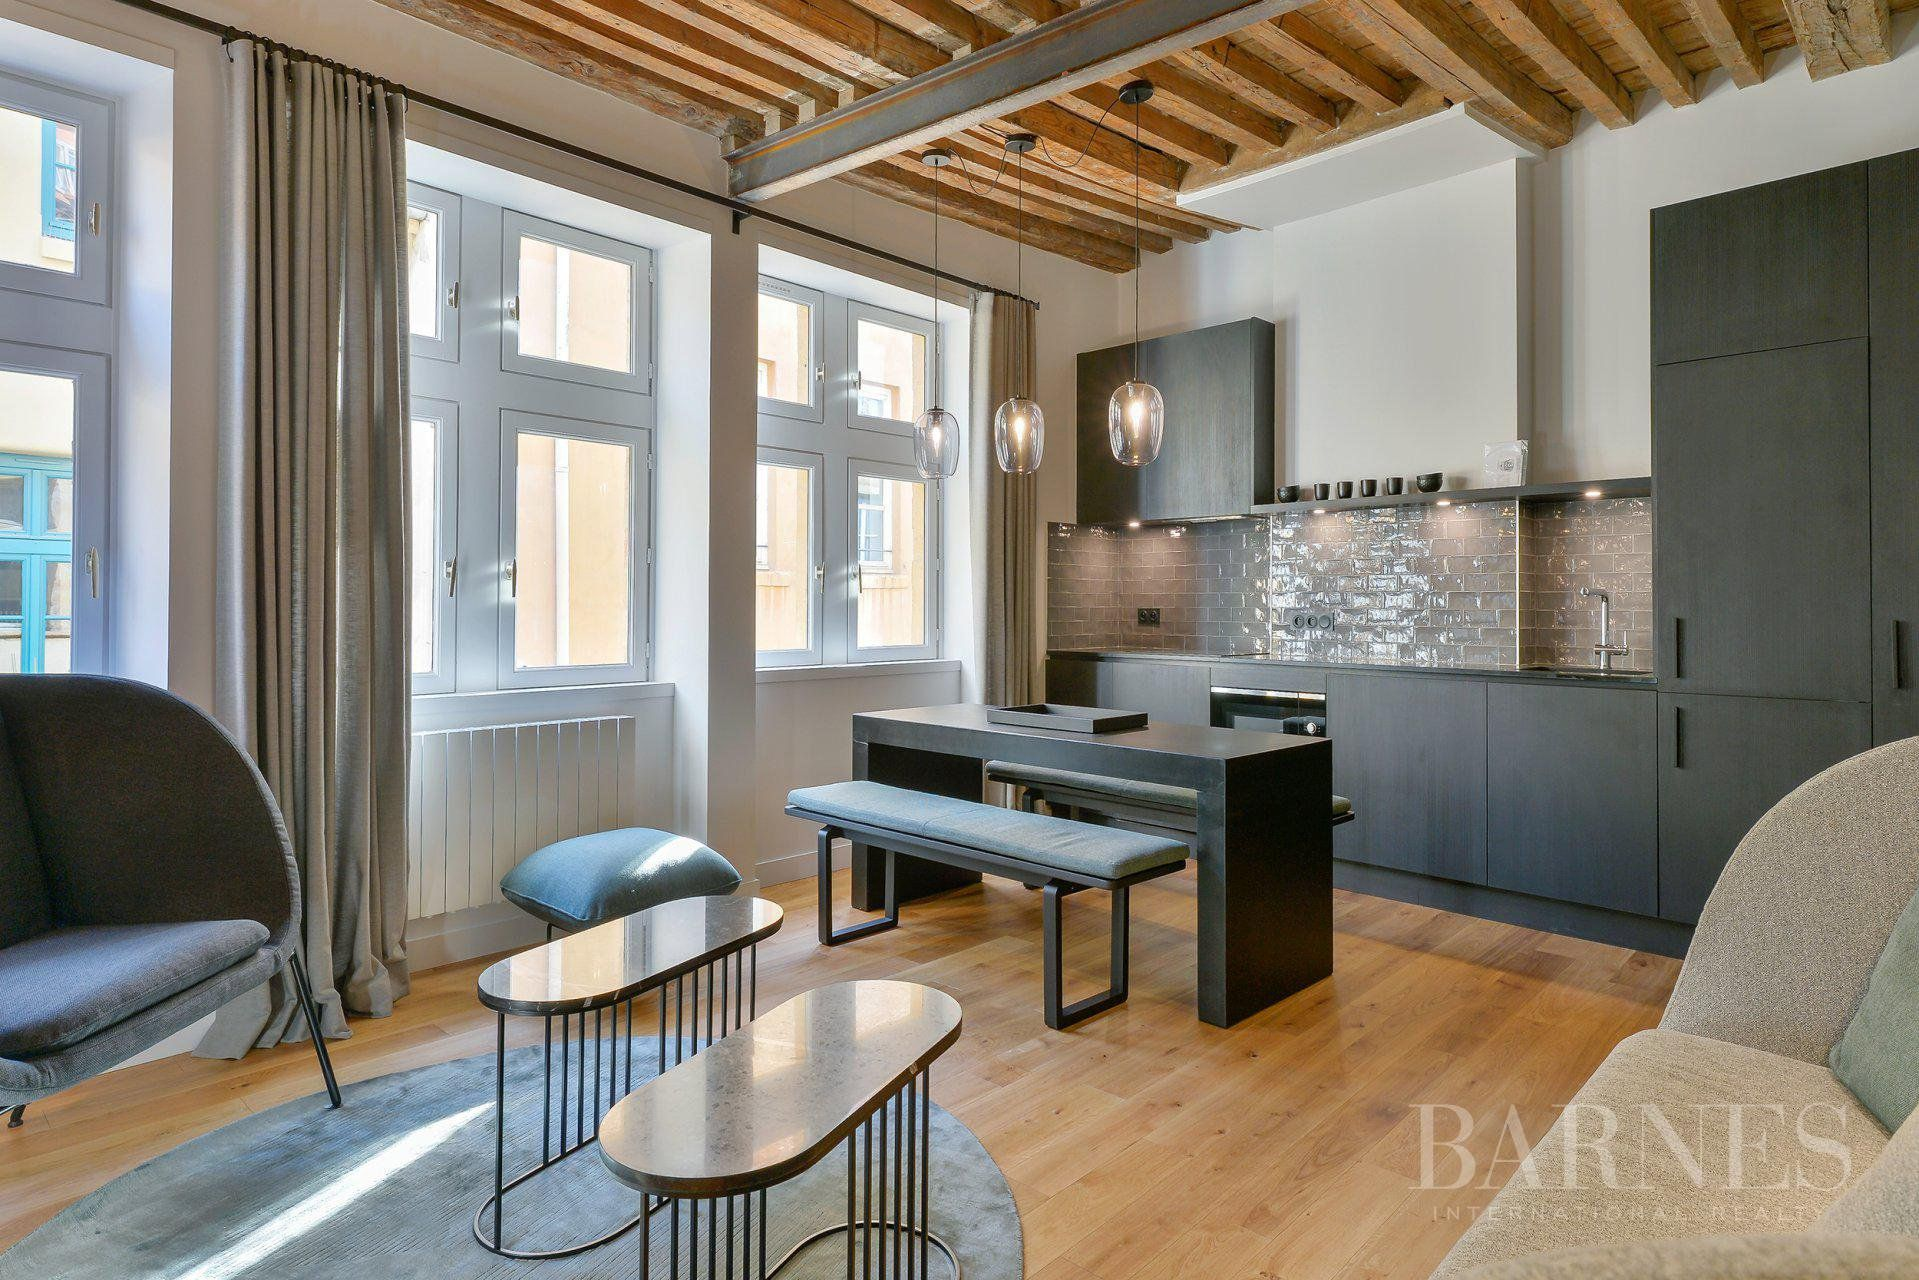 Lyon 5 - Saint-Georges - Exceptional furnished apartment of 55 sqm - 2 bedrooms